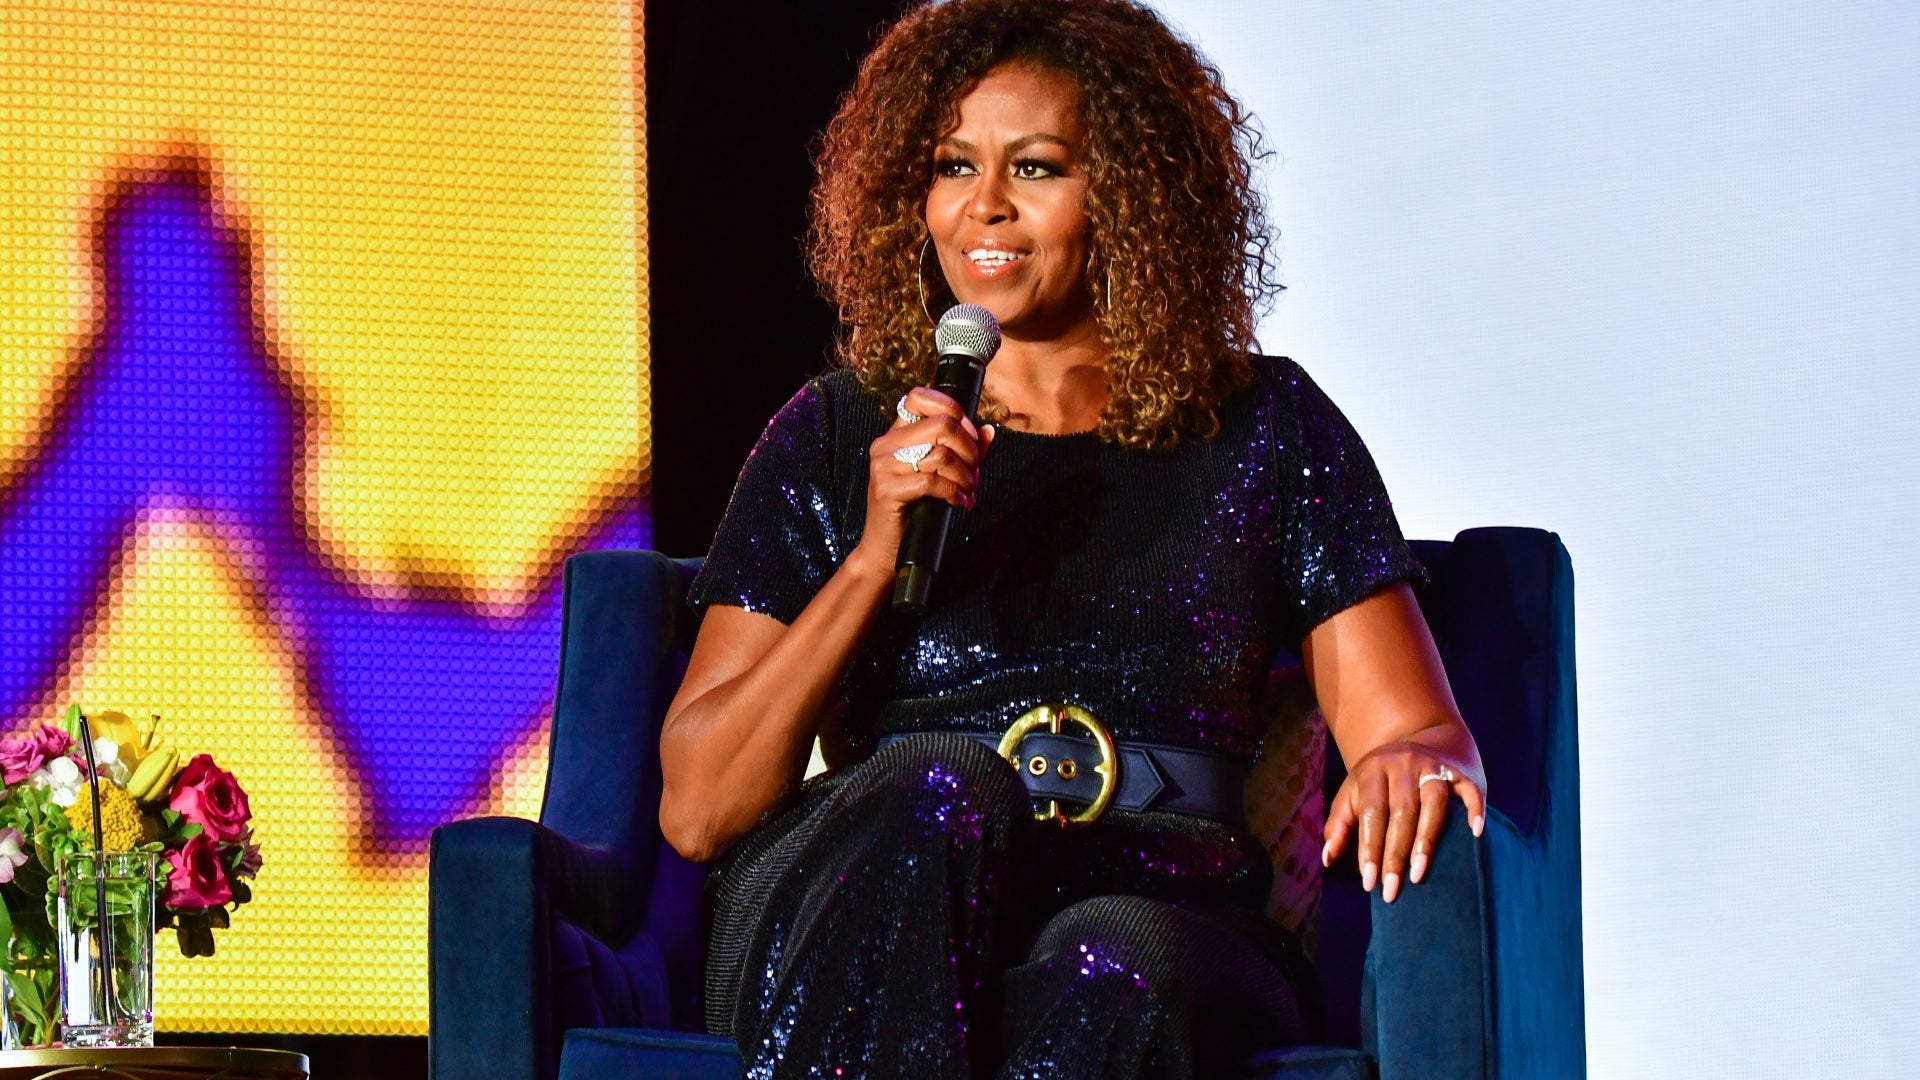 Michelle Obama Opens up About Raising Her Daughters in the White House